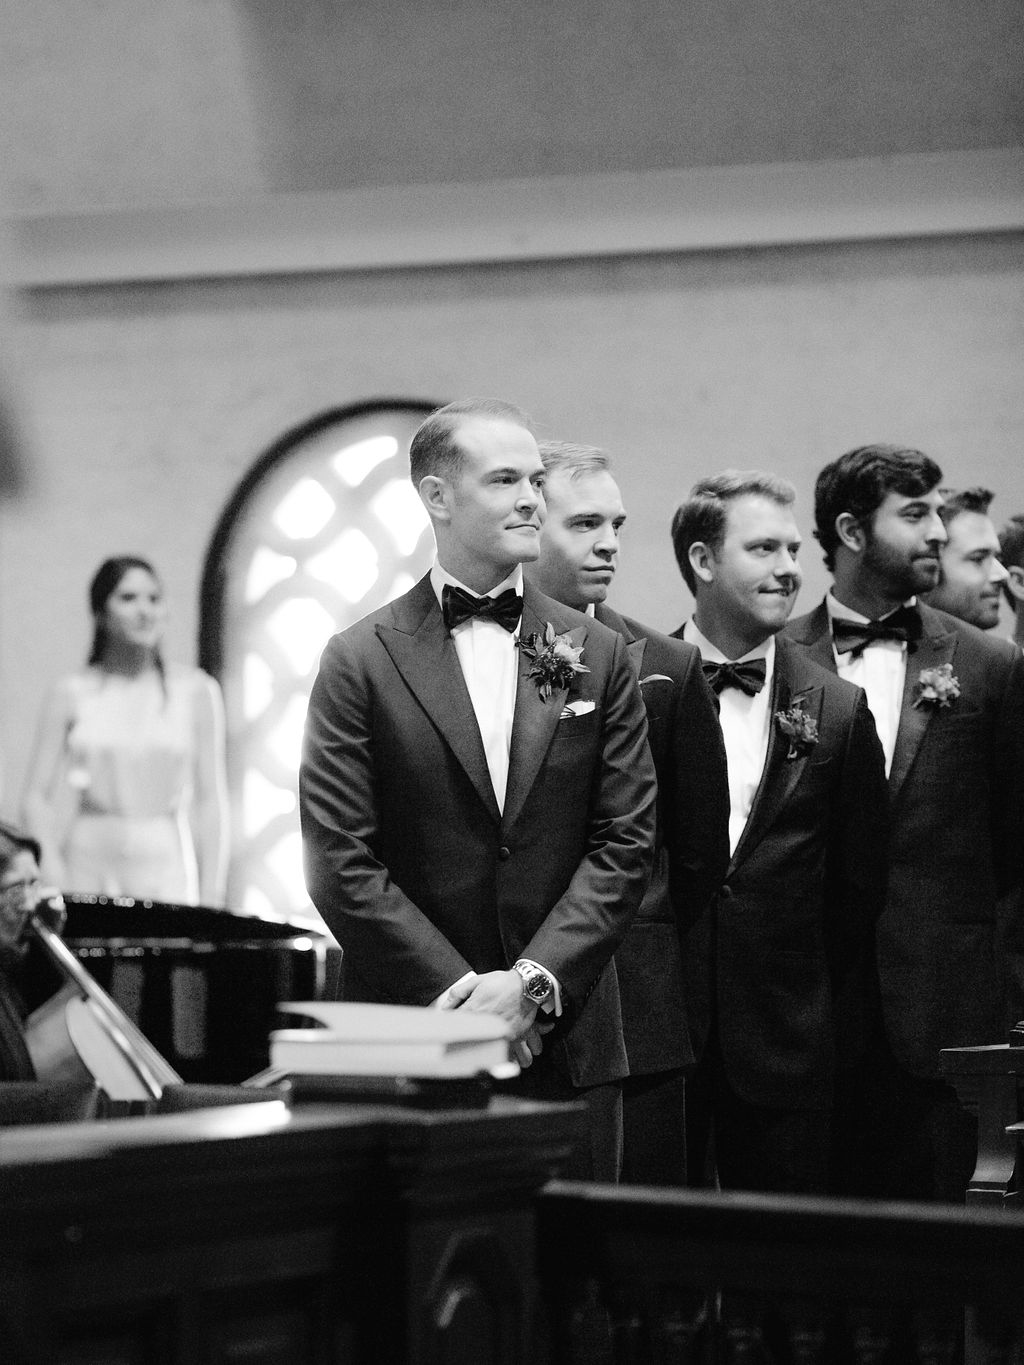 groom and groomsmen standing in tuxes at wedding ceremony